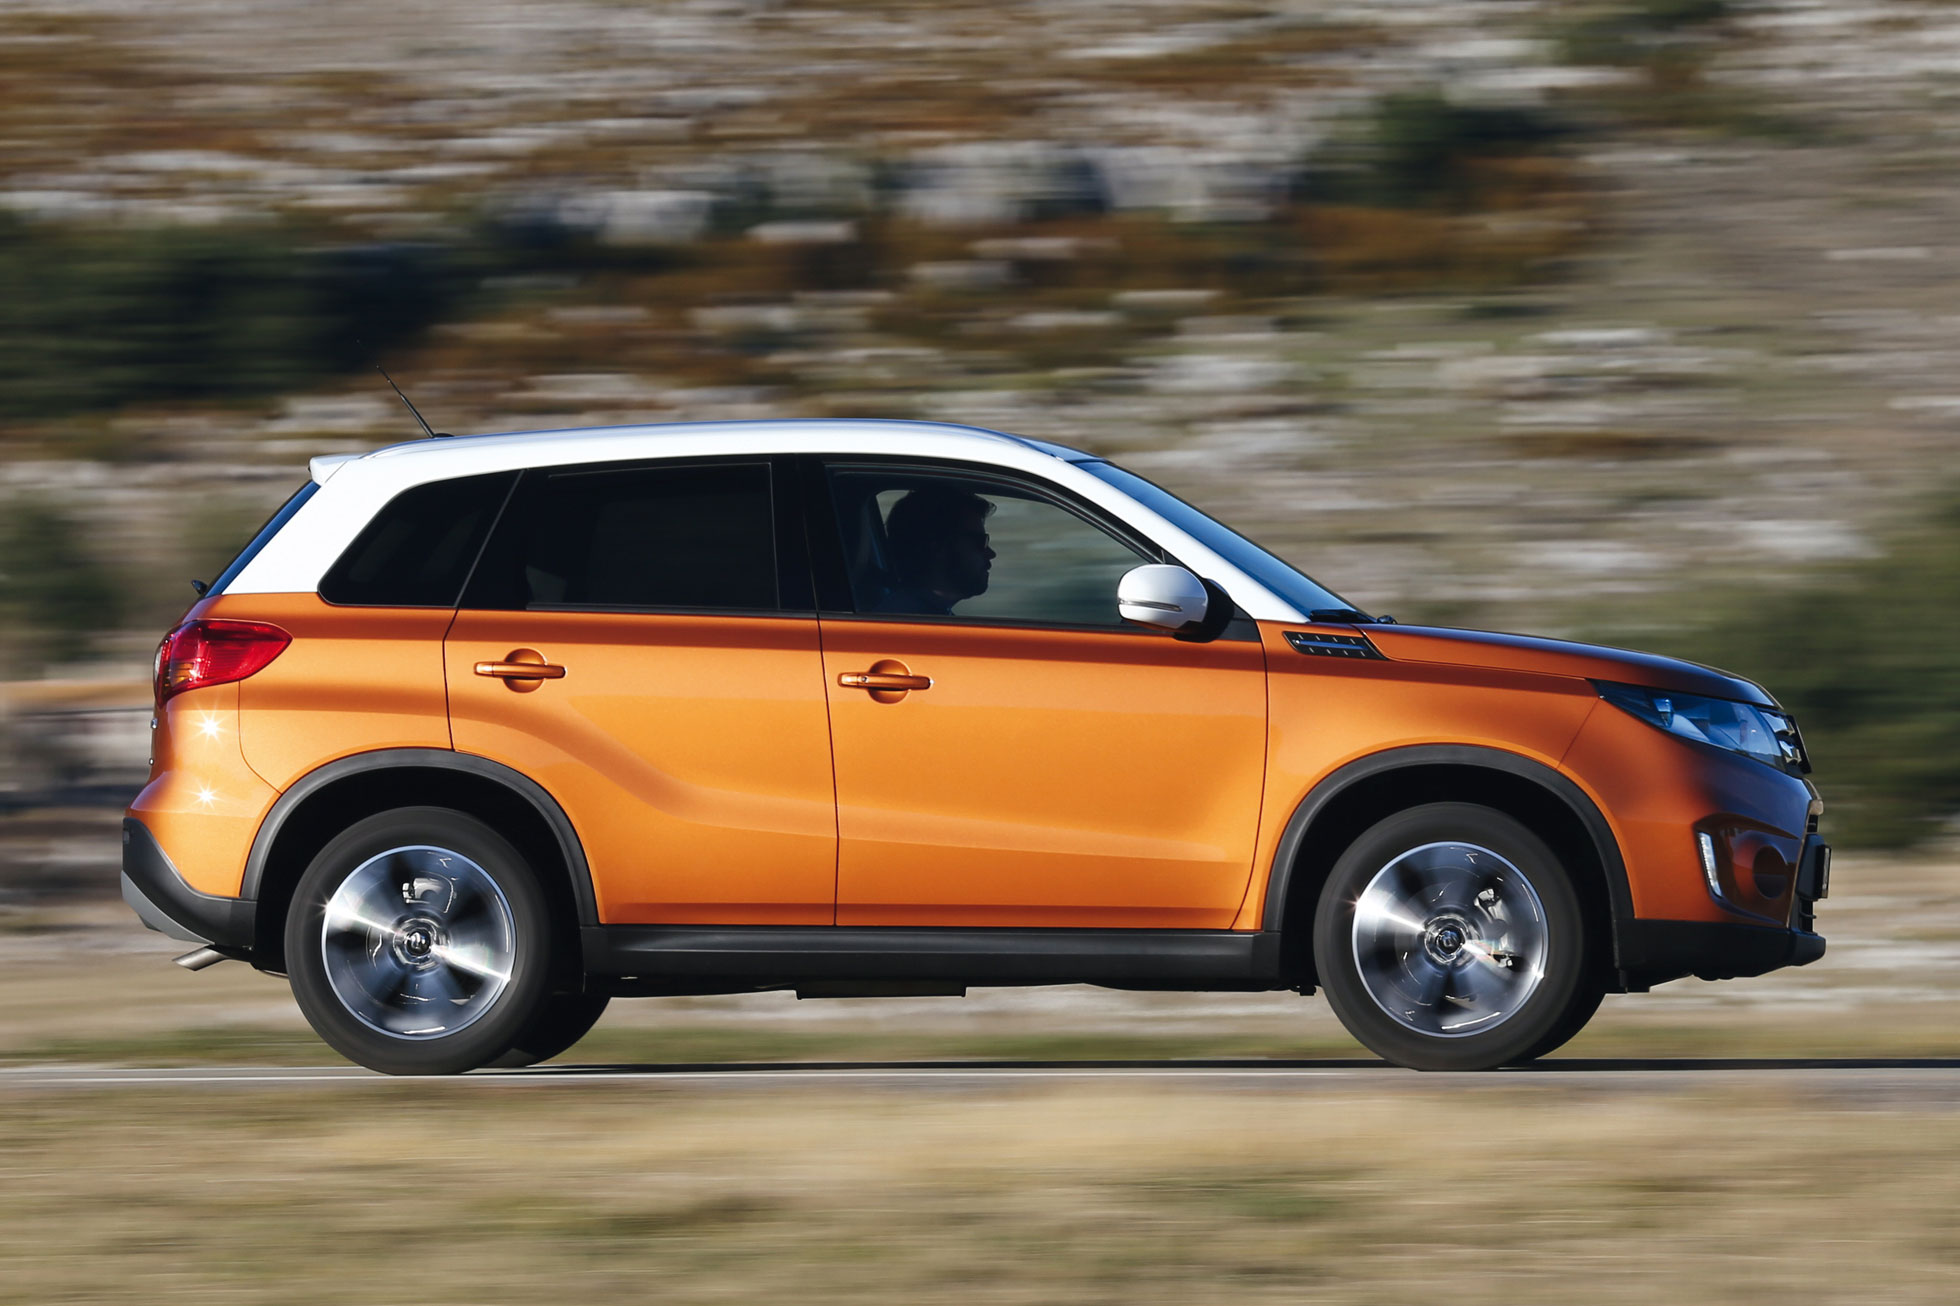 suzuki vitara review 2015 first drive motoring research. Black Bedroom Furniture Sets. Home Design Ideas